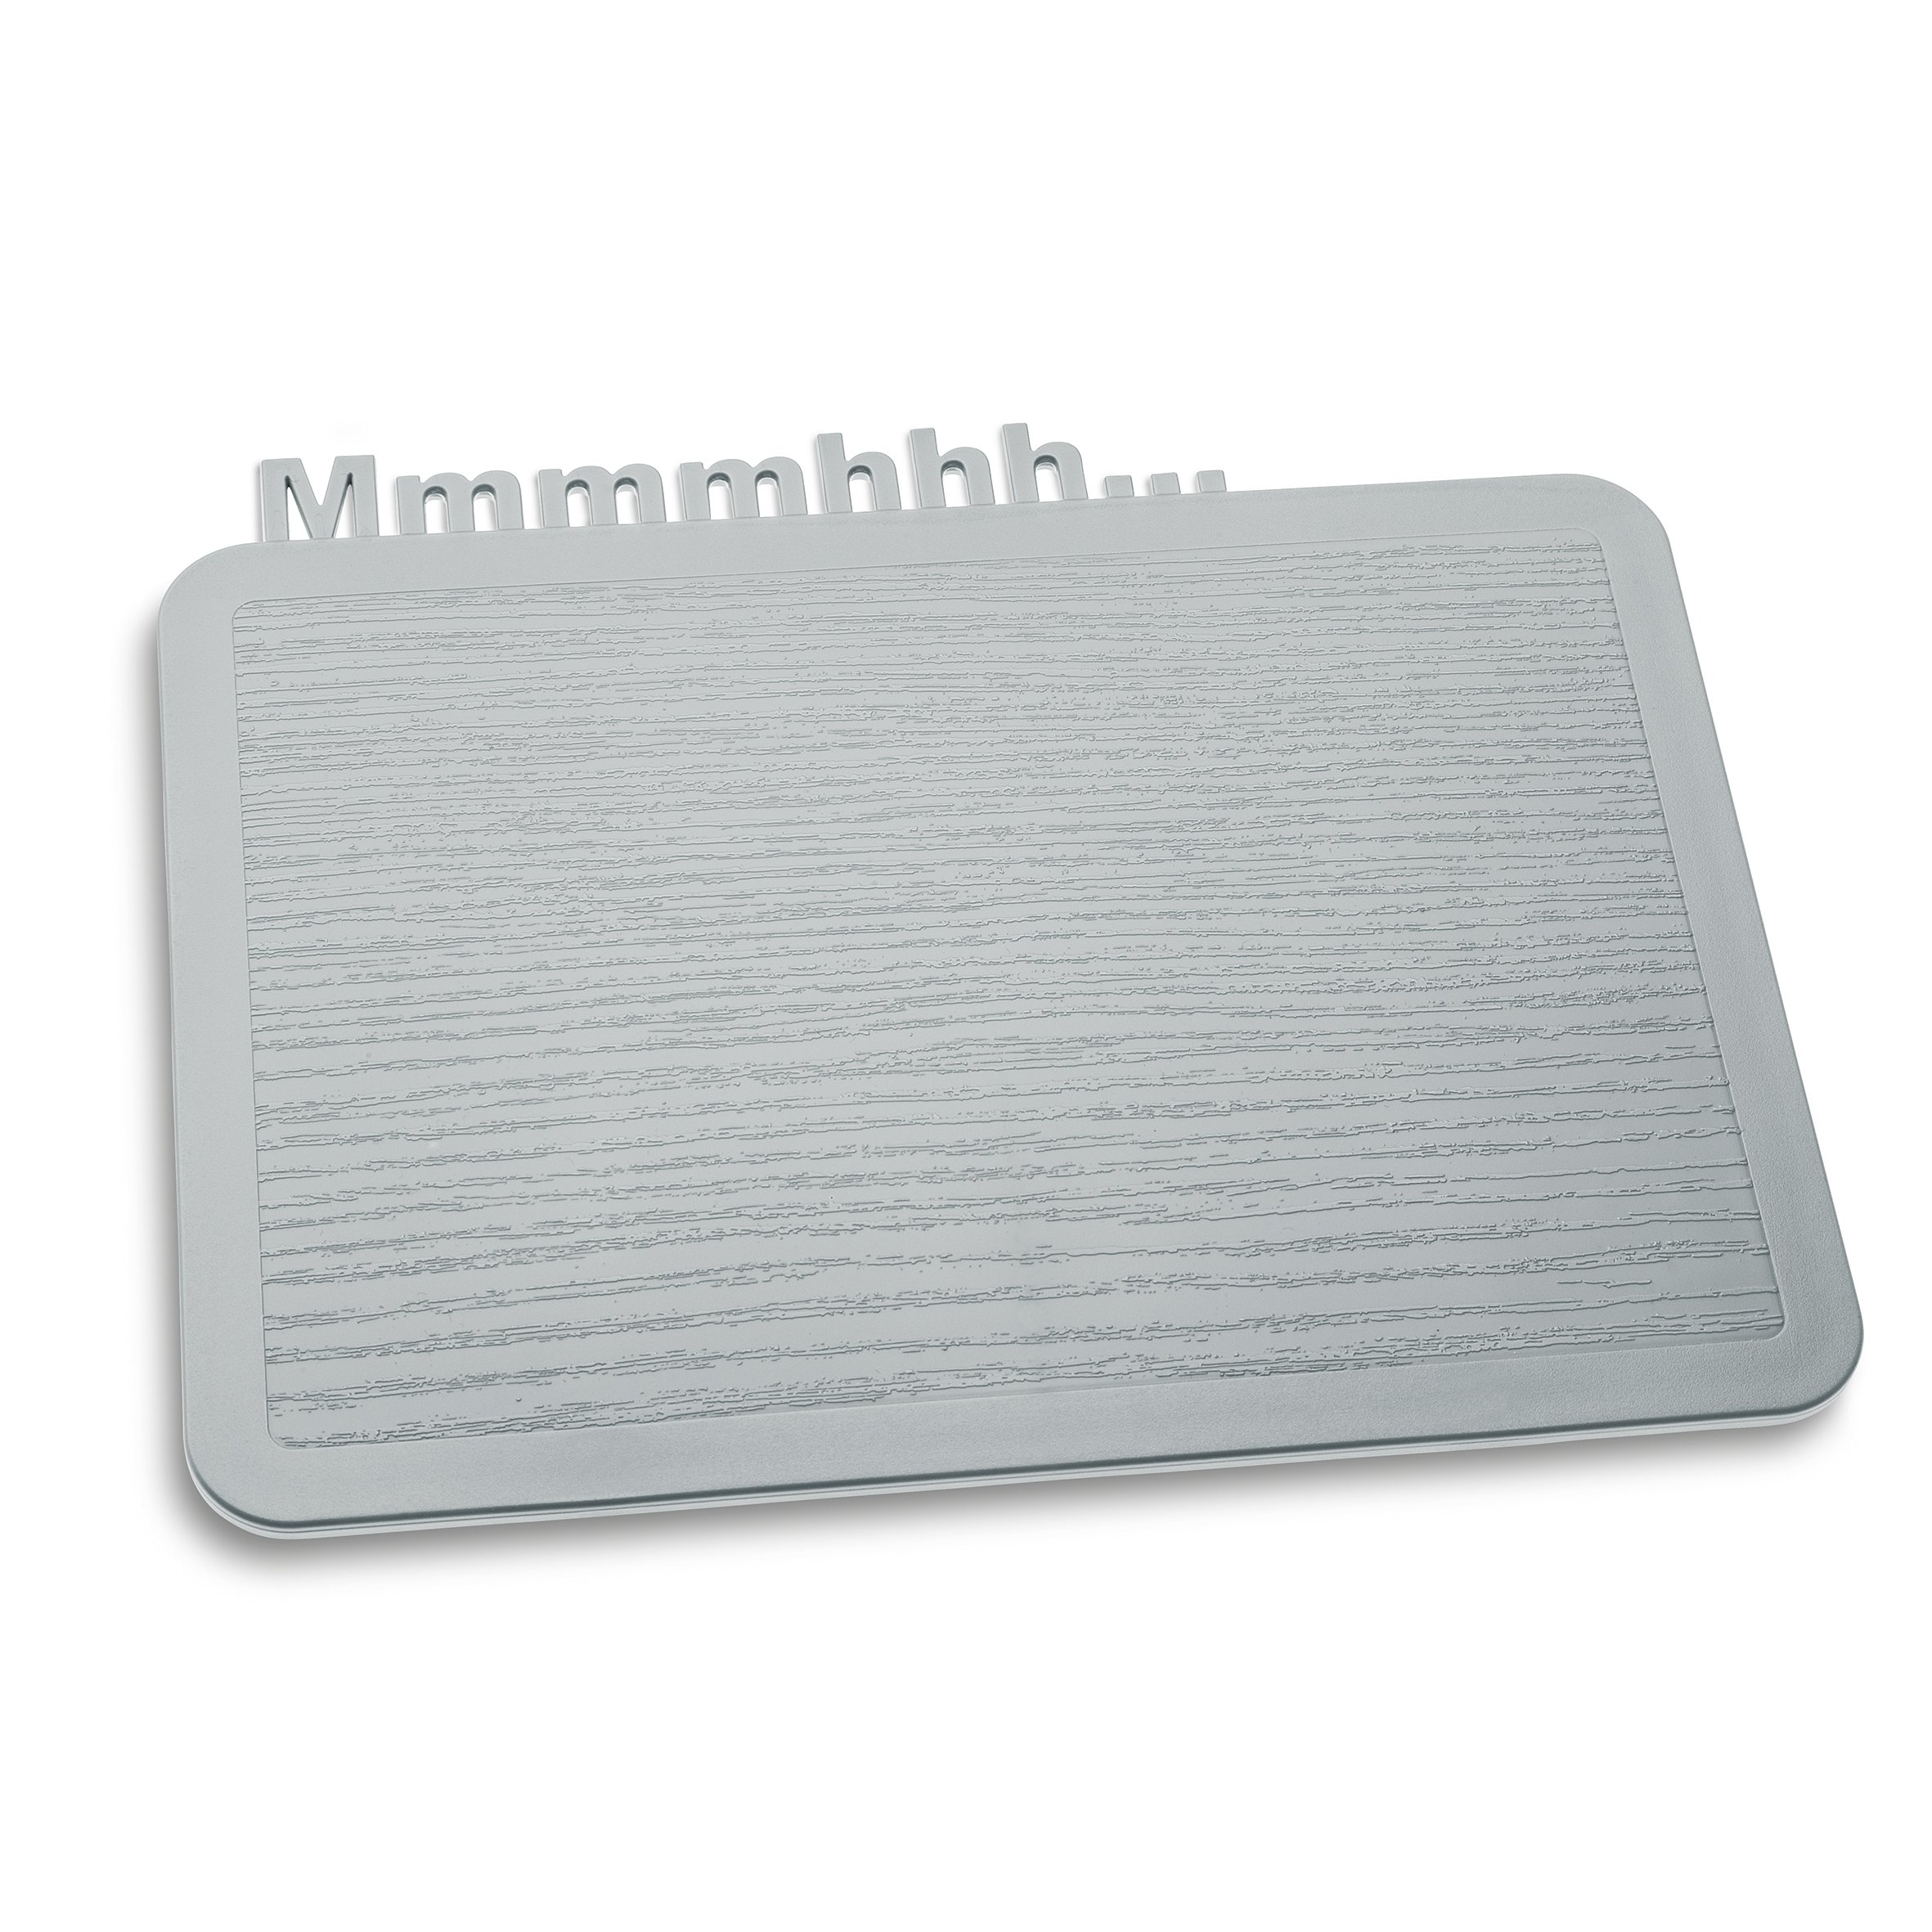 Koziol 3256632 Happy Mmmmhhh Snack Board, Solid Cool Gray